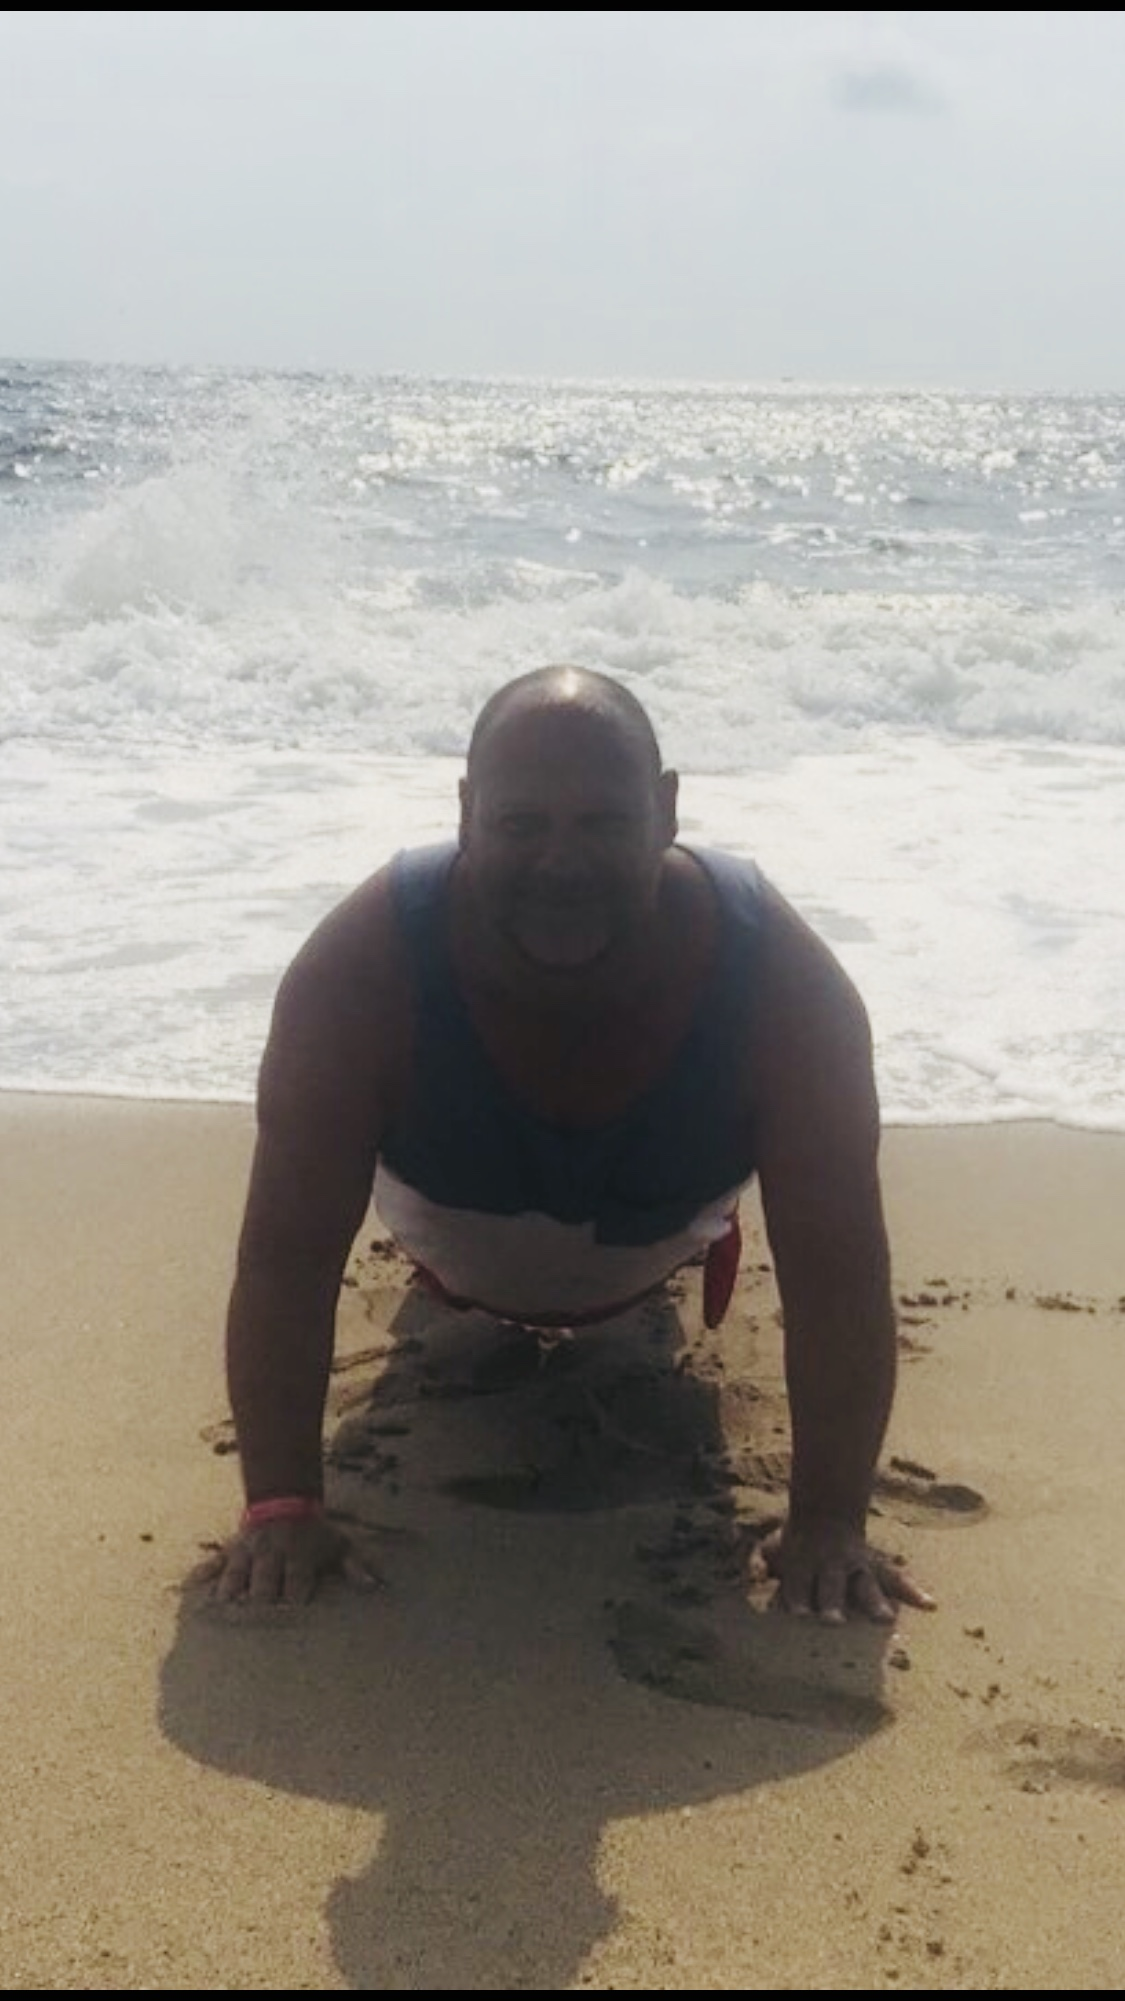 Sweaty person doing push ups on the beach with ocean in background.